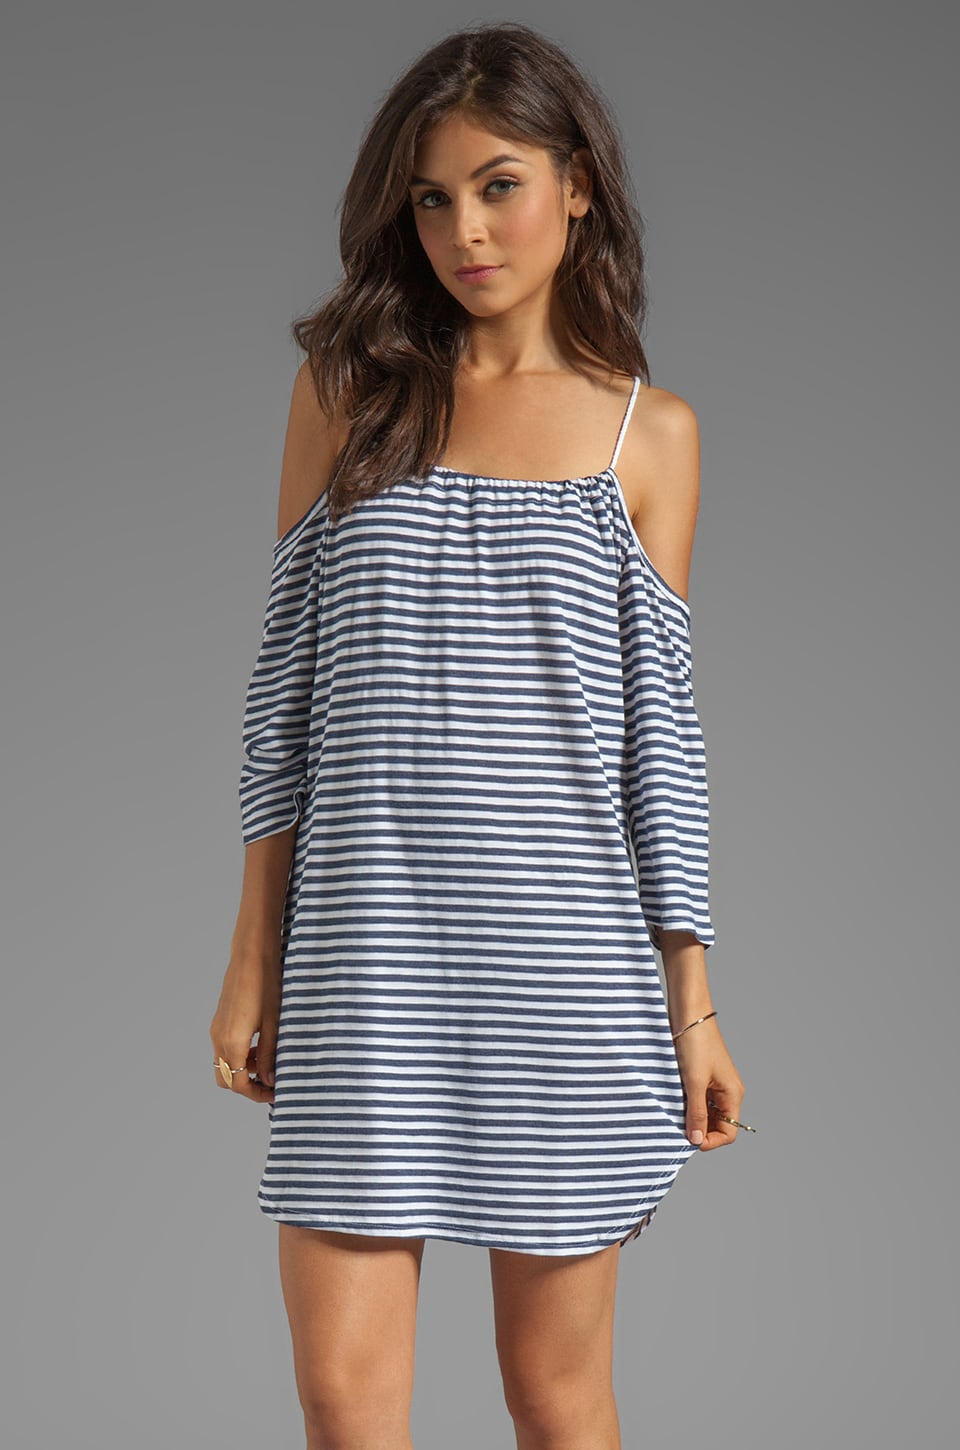 Blue Life Open Shoulder Dress Stripe in Heather Blue